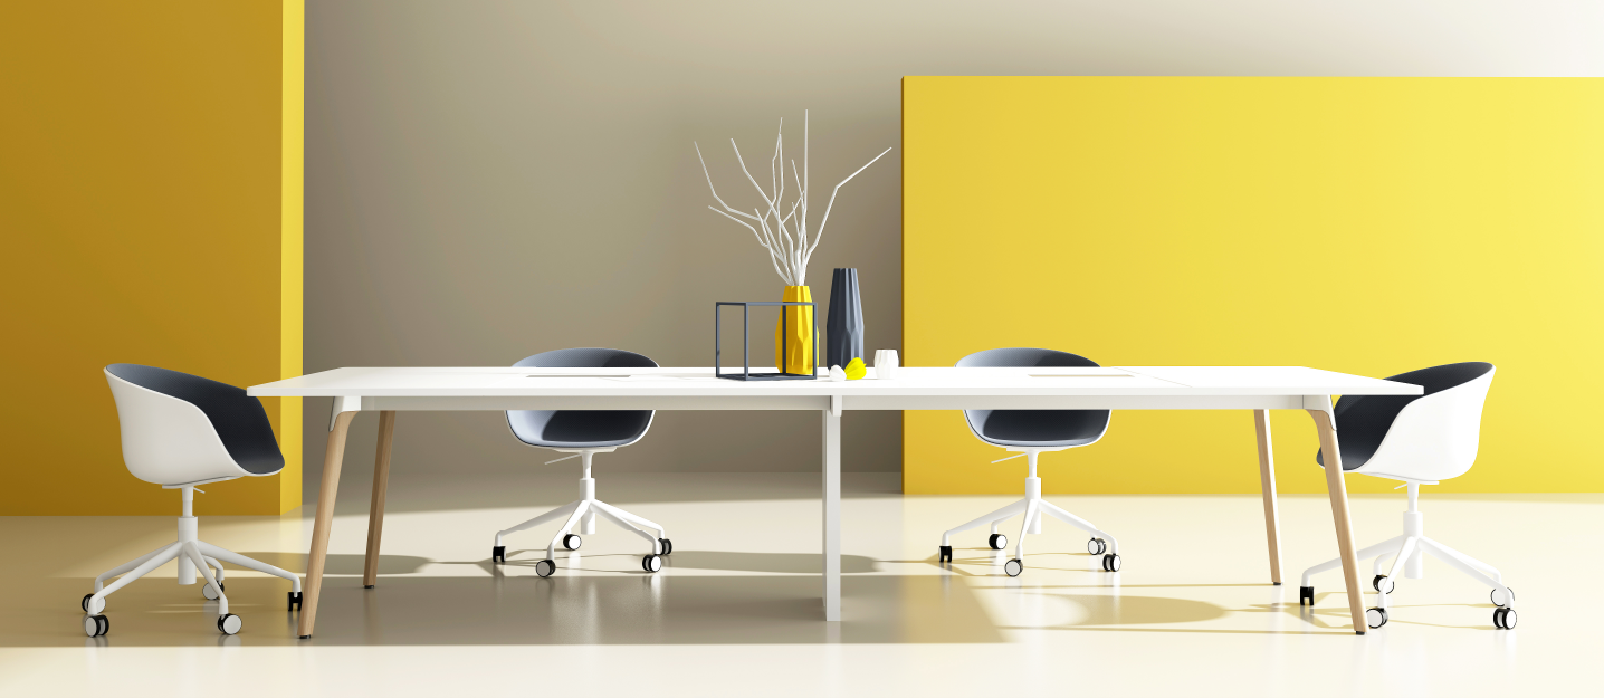 news-How to Decorate Modern Office Efficiently-GOJO-img-1